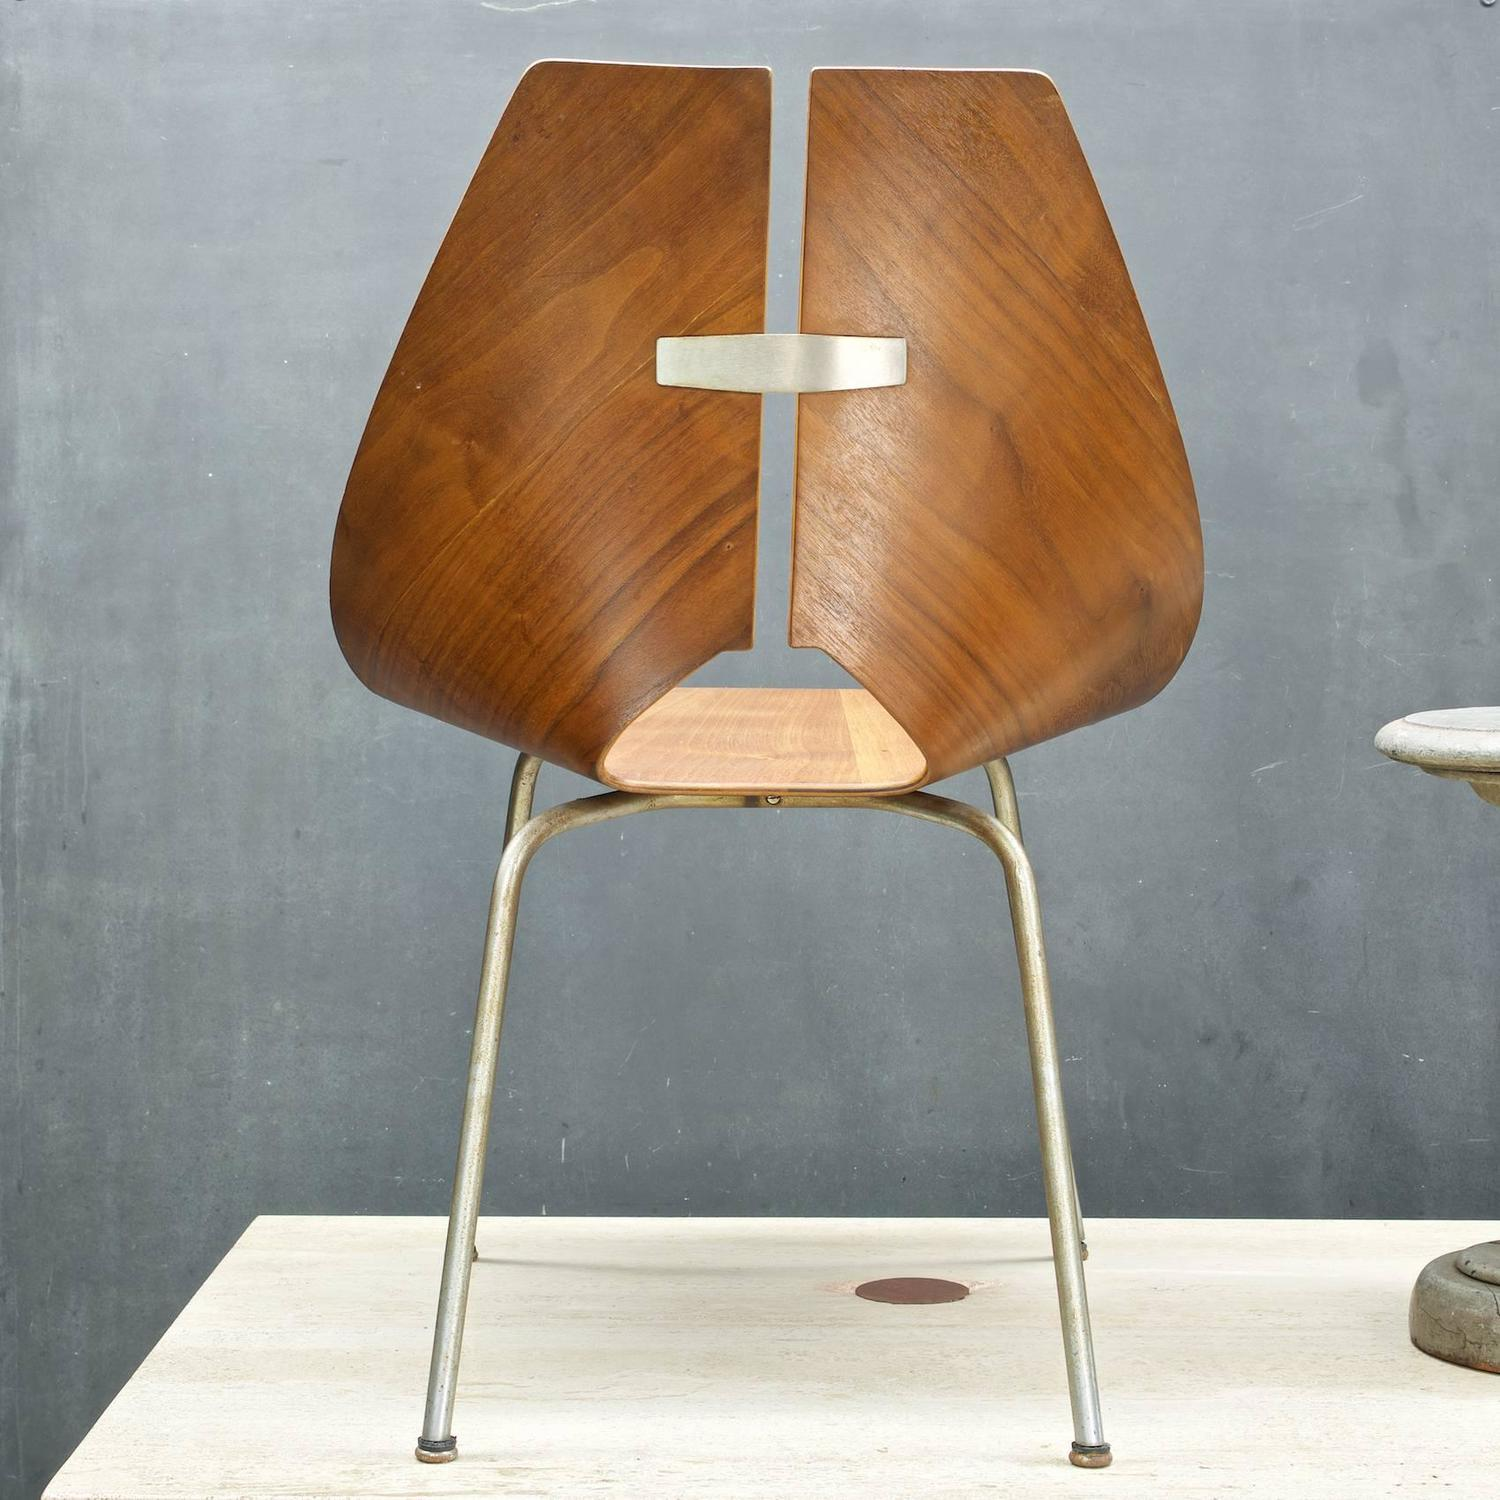 Bent Plywood Chair Ray Komai Chair For Sale At 1stdibs